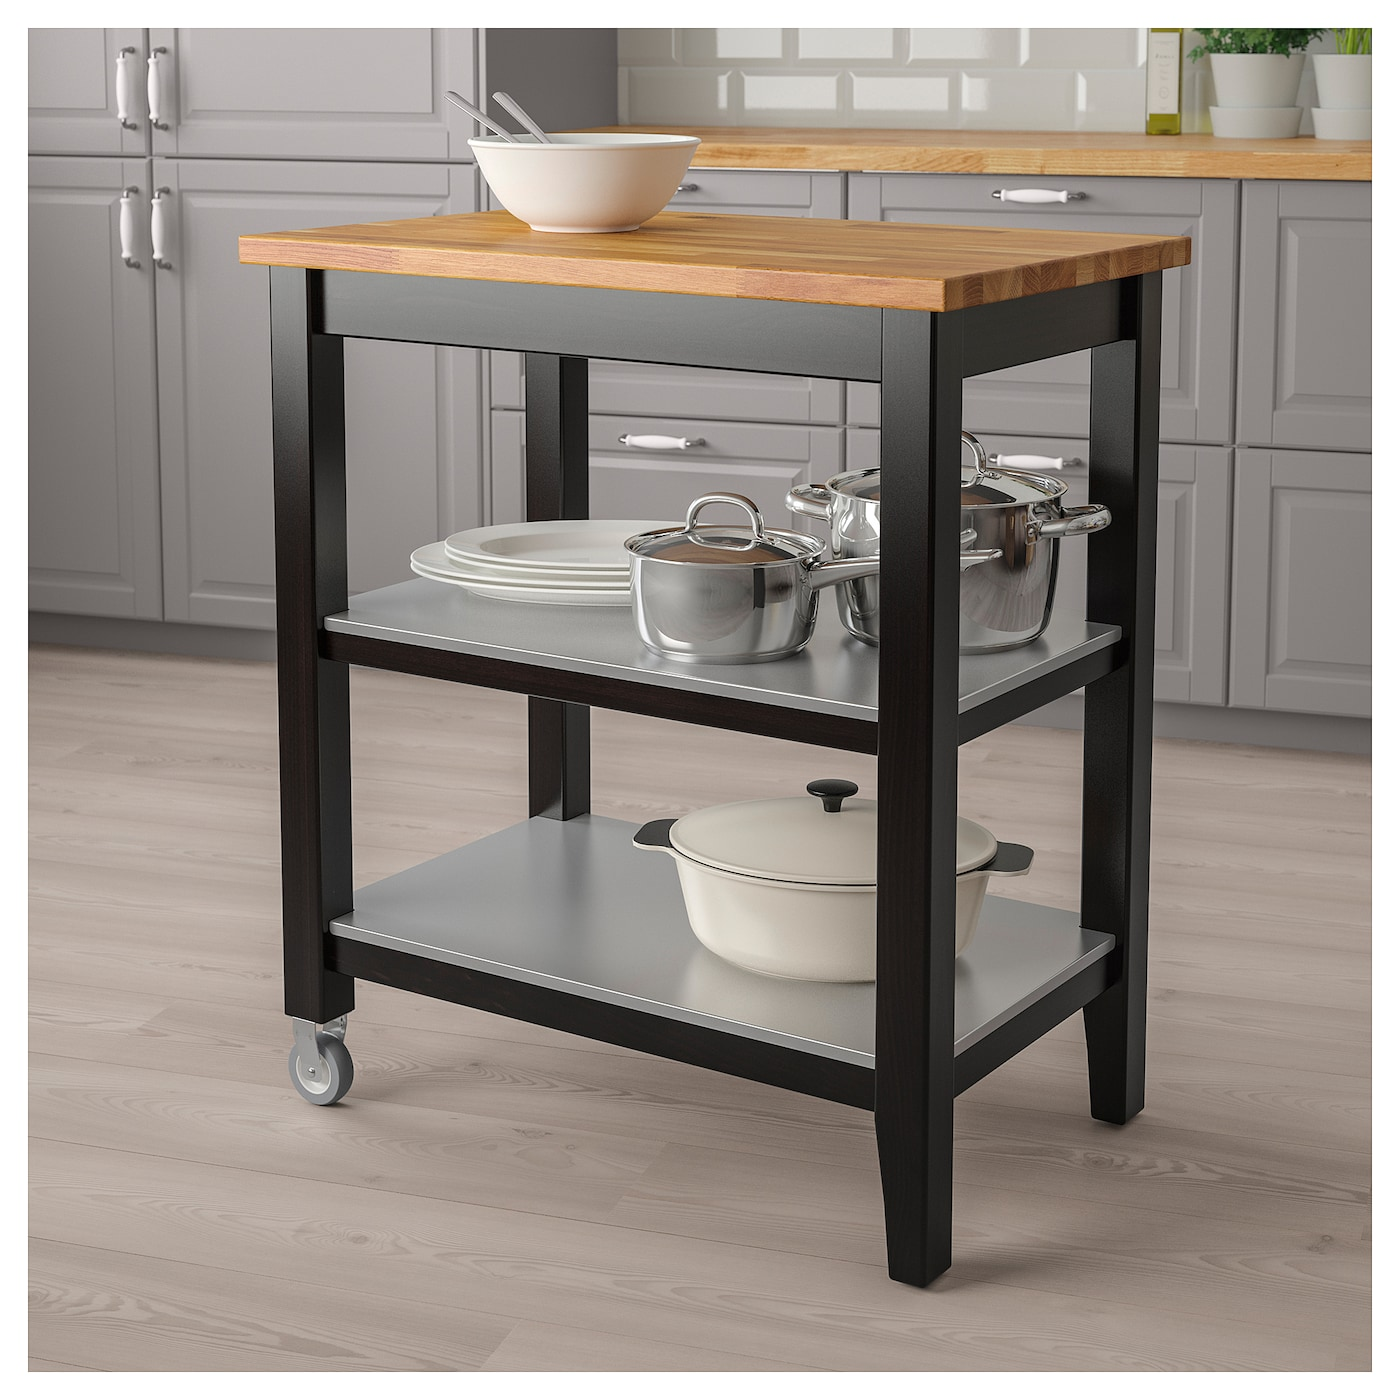 Stenstorp Kitchen Trolley Blackbrownoak 79 X 51 X 90 Cm. Small Space Living Room Design. Furniture For A Small Living Room. Blue Living Room Set. Brown And Gray Living Room. Dining Room Chair Sets 6. Living Room Perspective. Antique Oak Dining Room Table. Living Room Vase Decoration